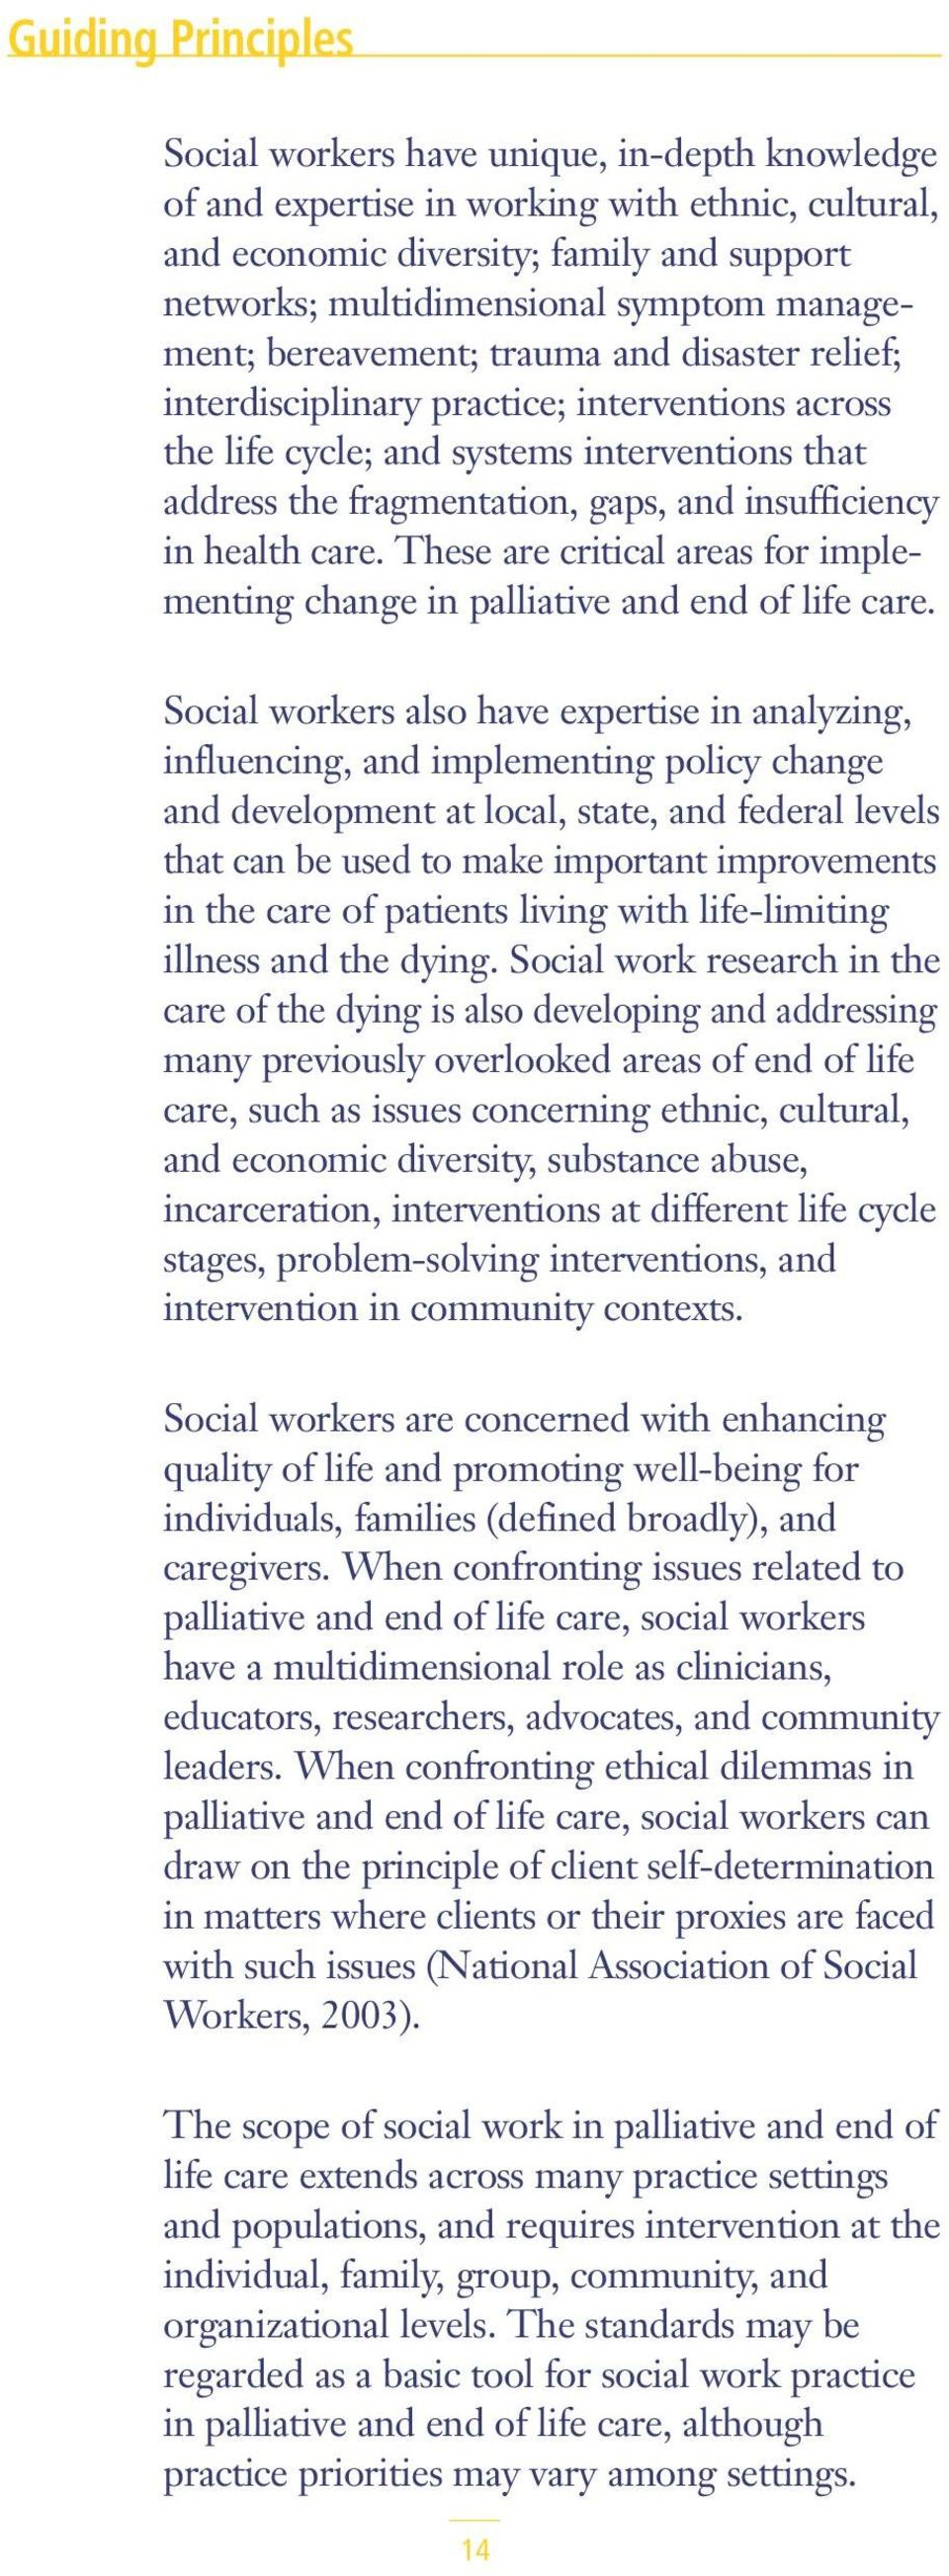 in health care. These are critical areas for implementing change in palliative and end of life care.